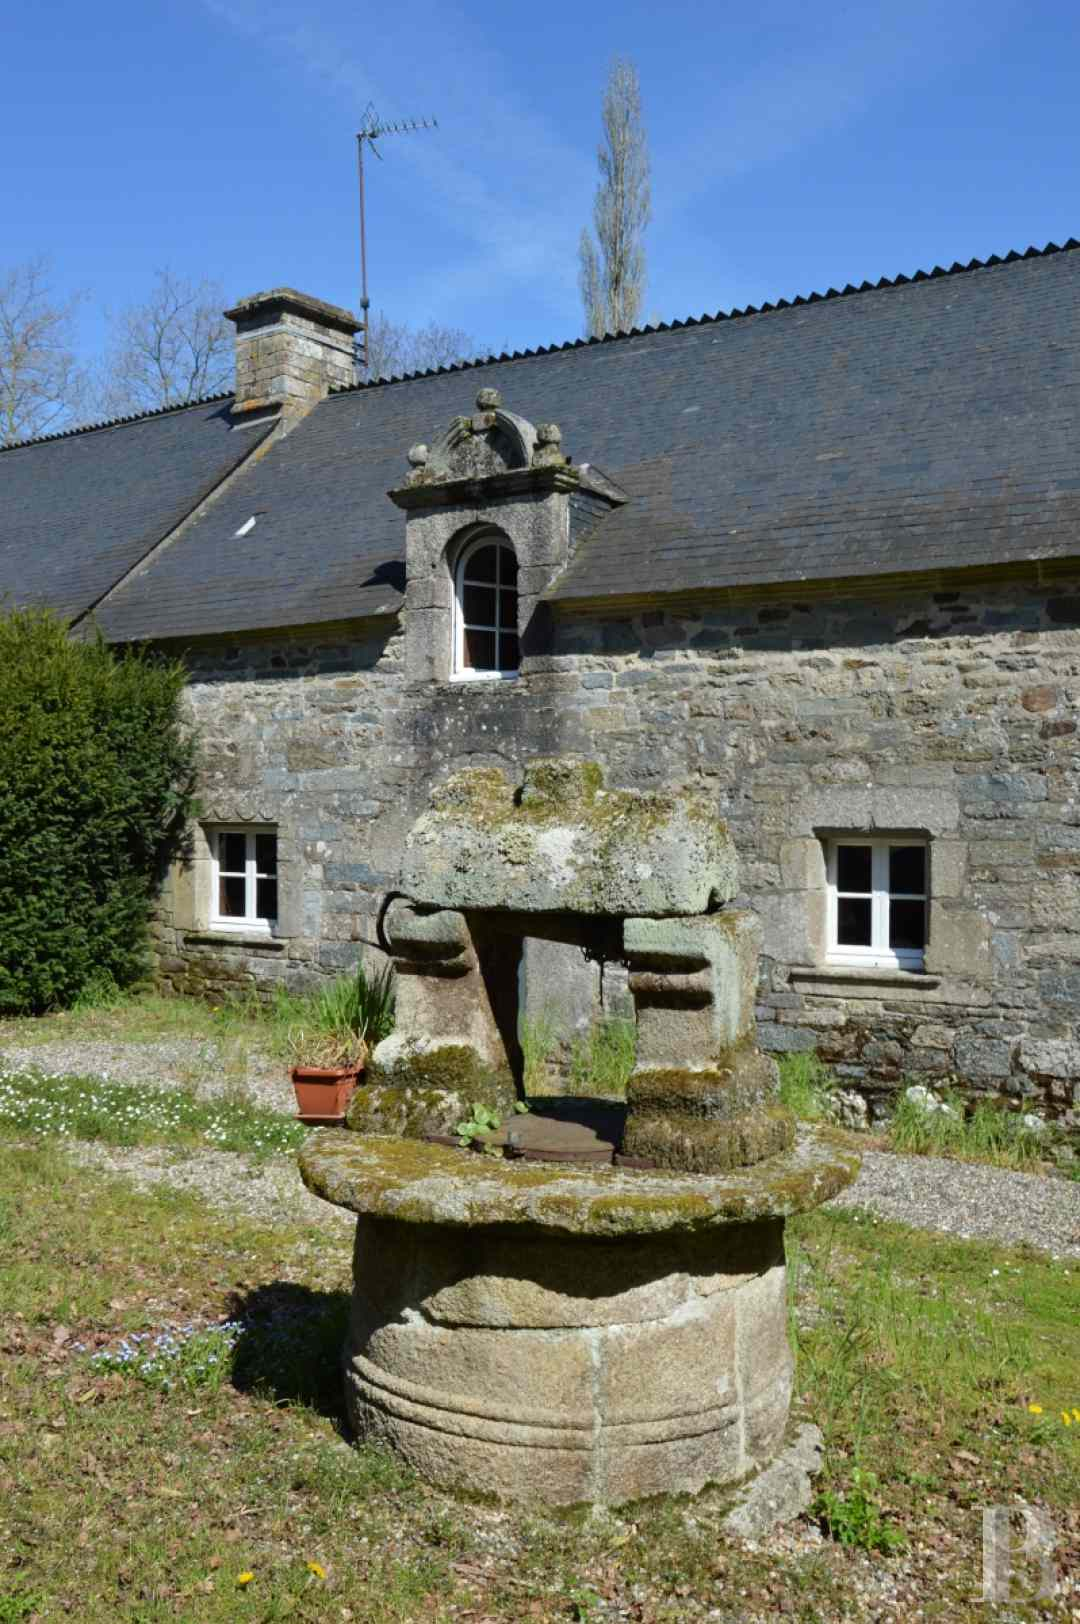 property for sale France brittany residences for - 6 zoom